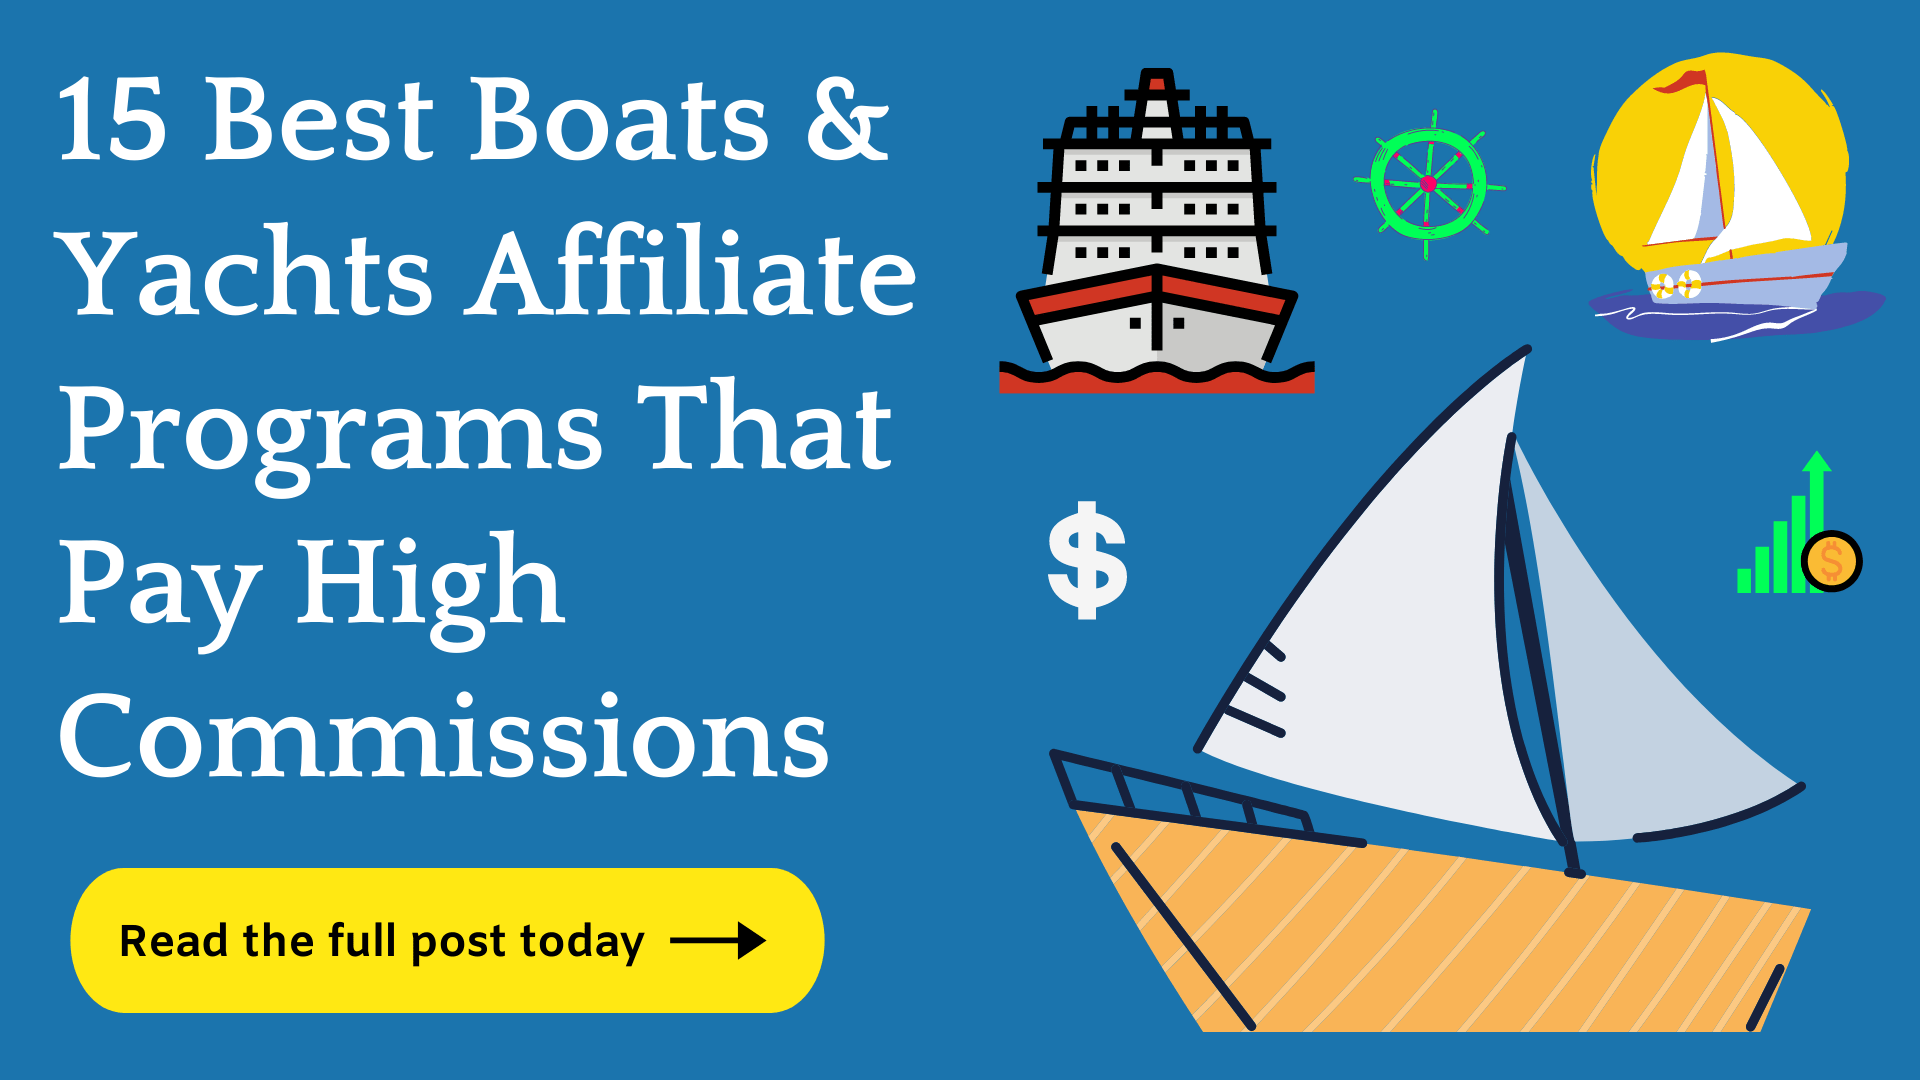 Boats and Yachts Affiliate Programs